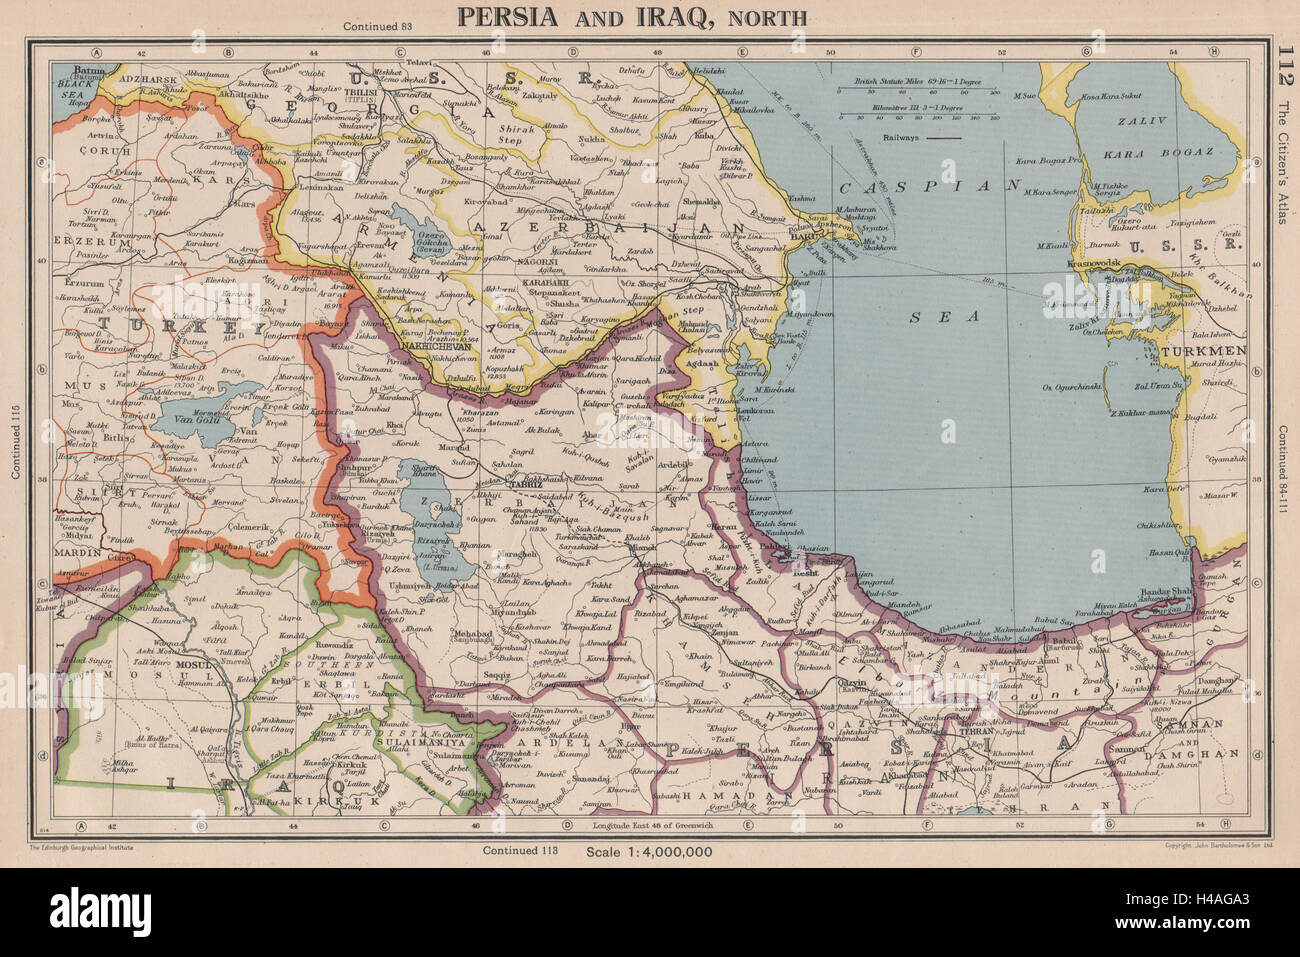 Southern caucasus persia iran north iraq azerbaijan armenia persia iran north iraq azerbaijan armenia turkey 1944 map gumiabroncs Images